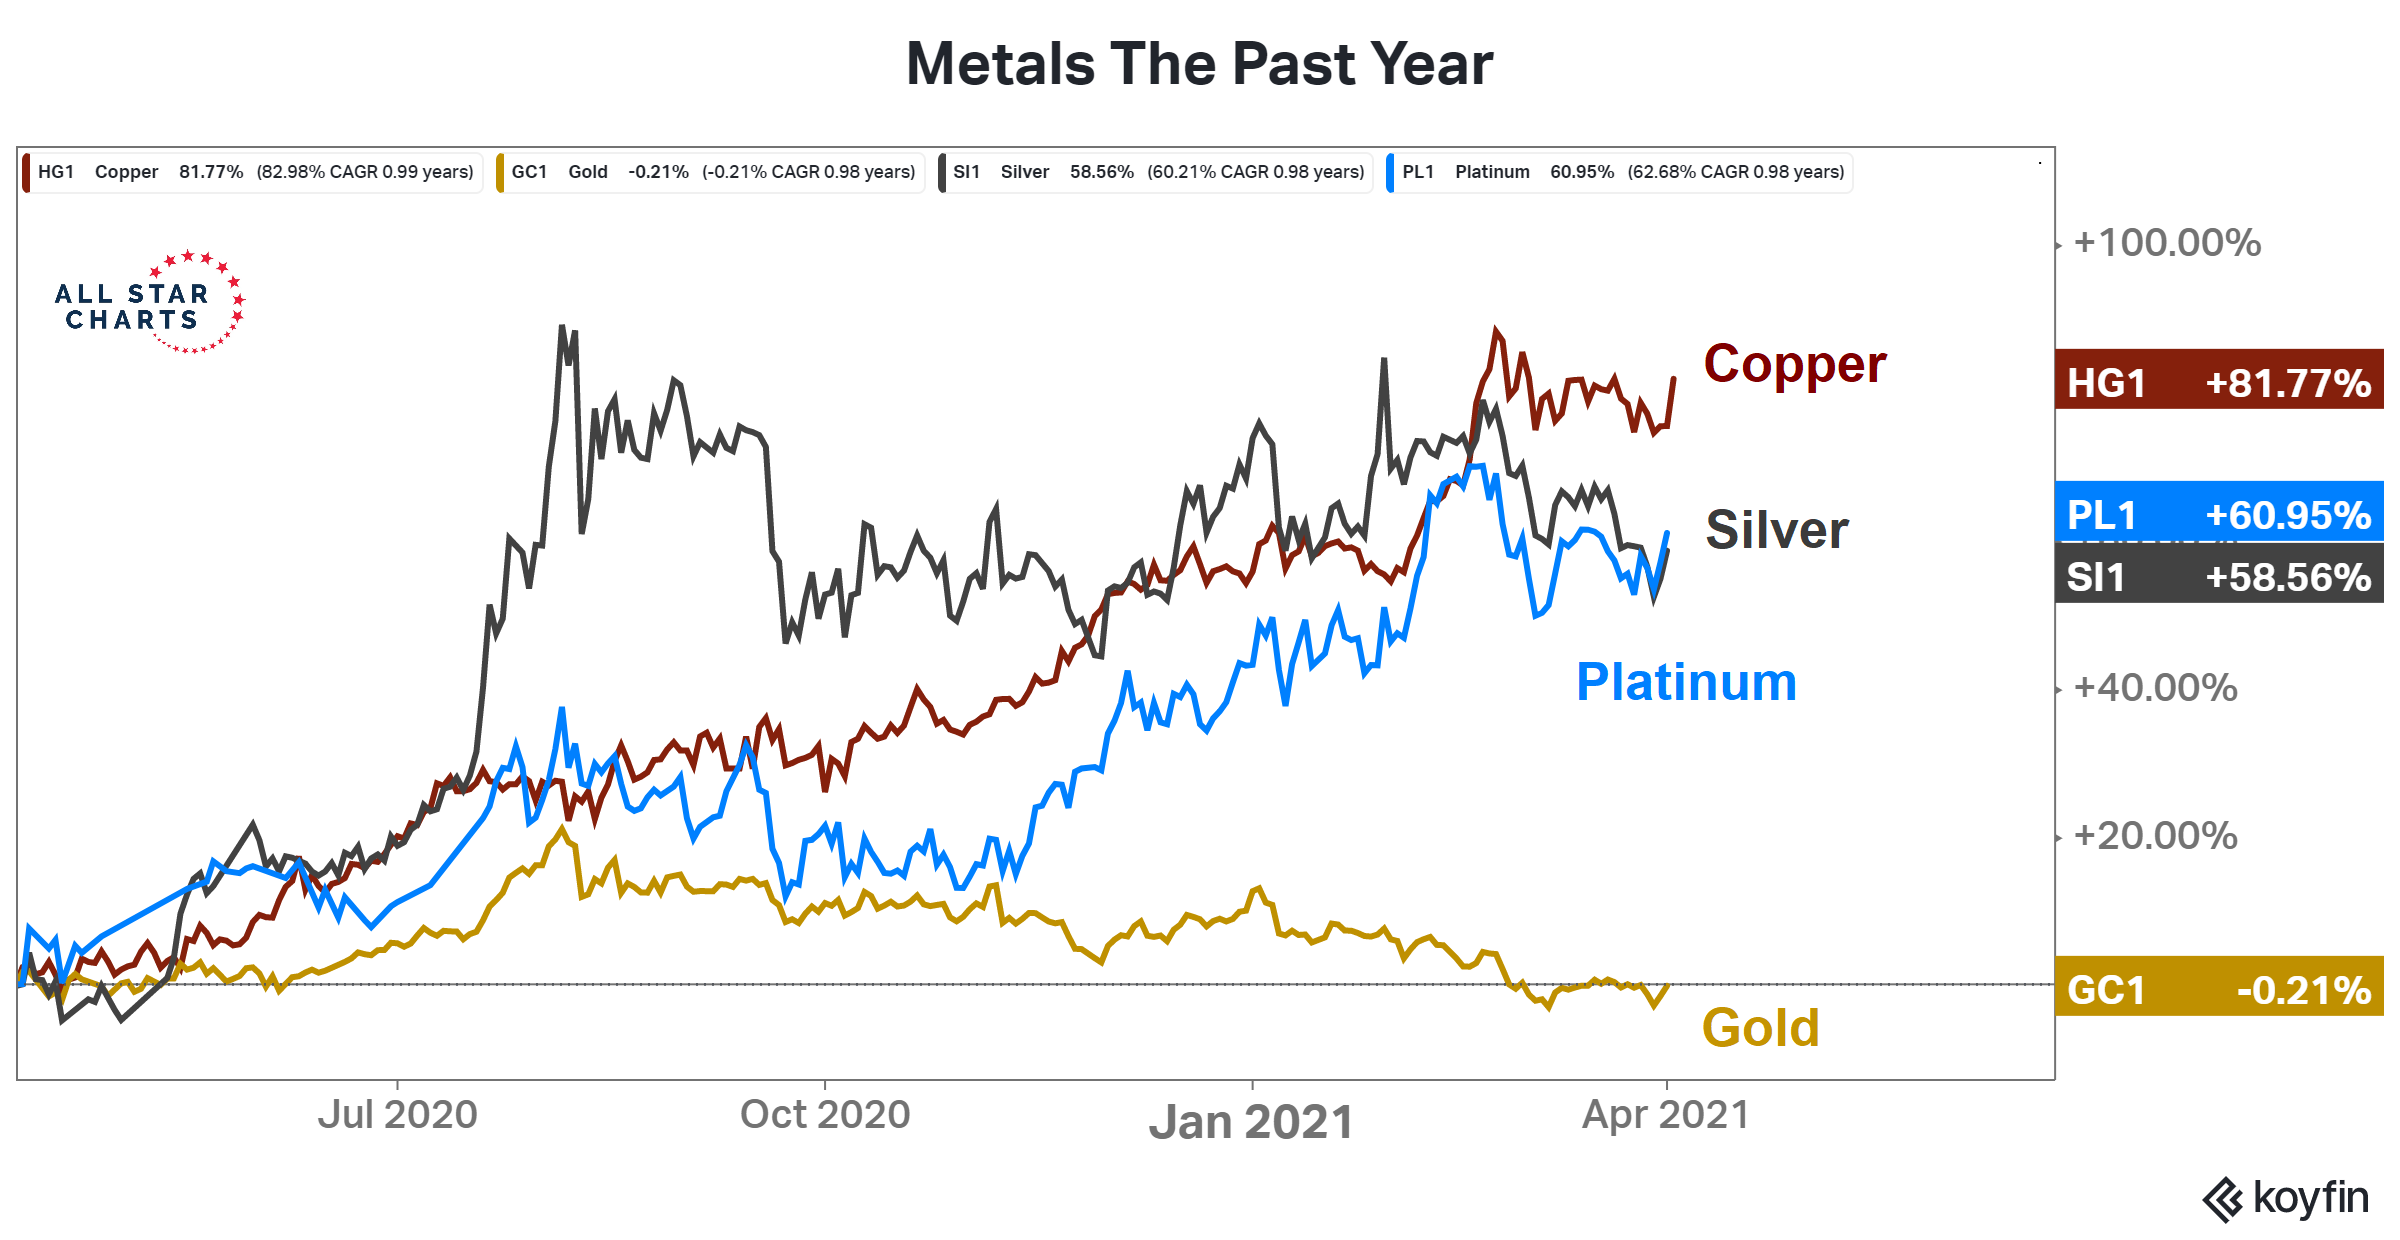 Metals in the past year: gold did not perform well